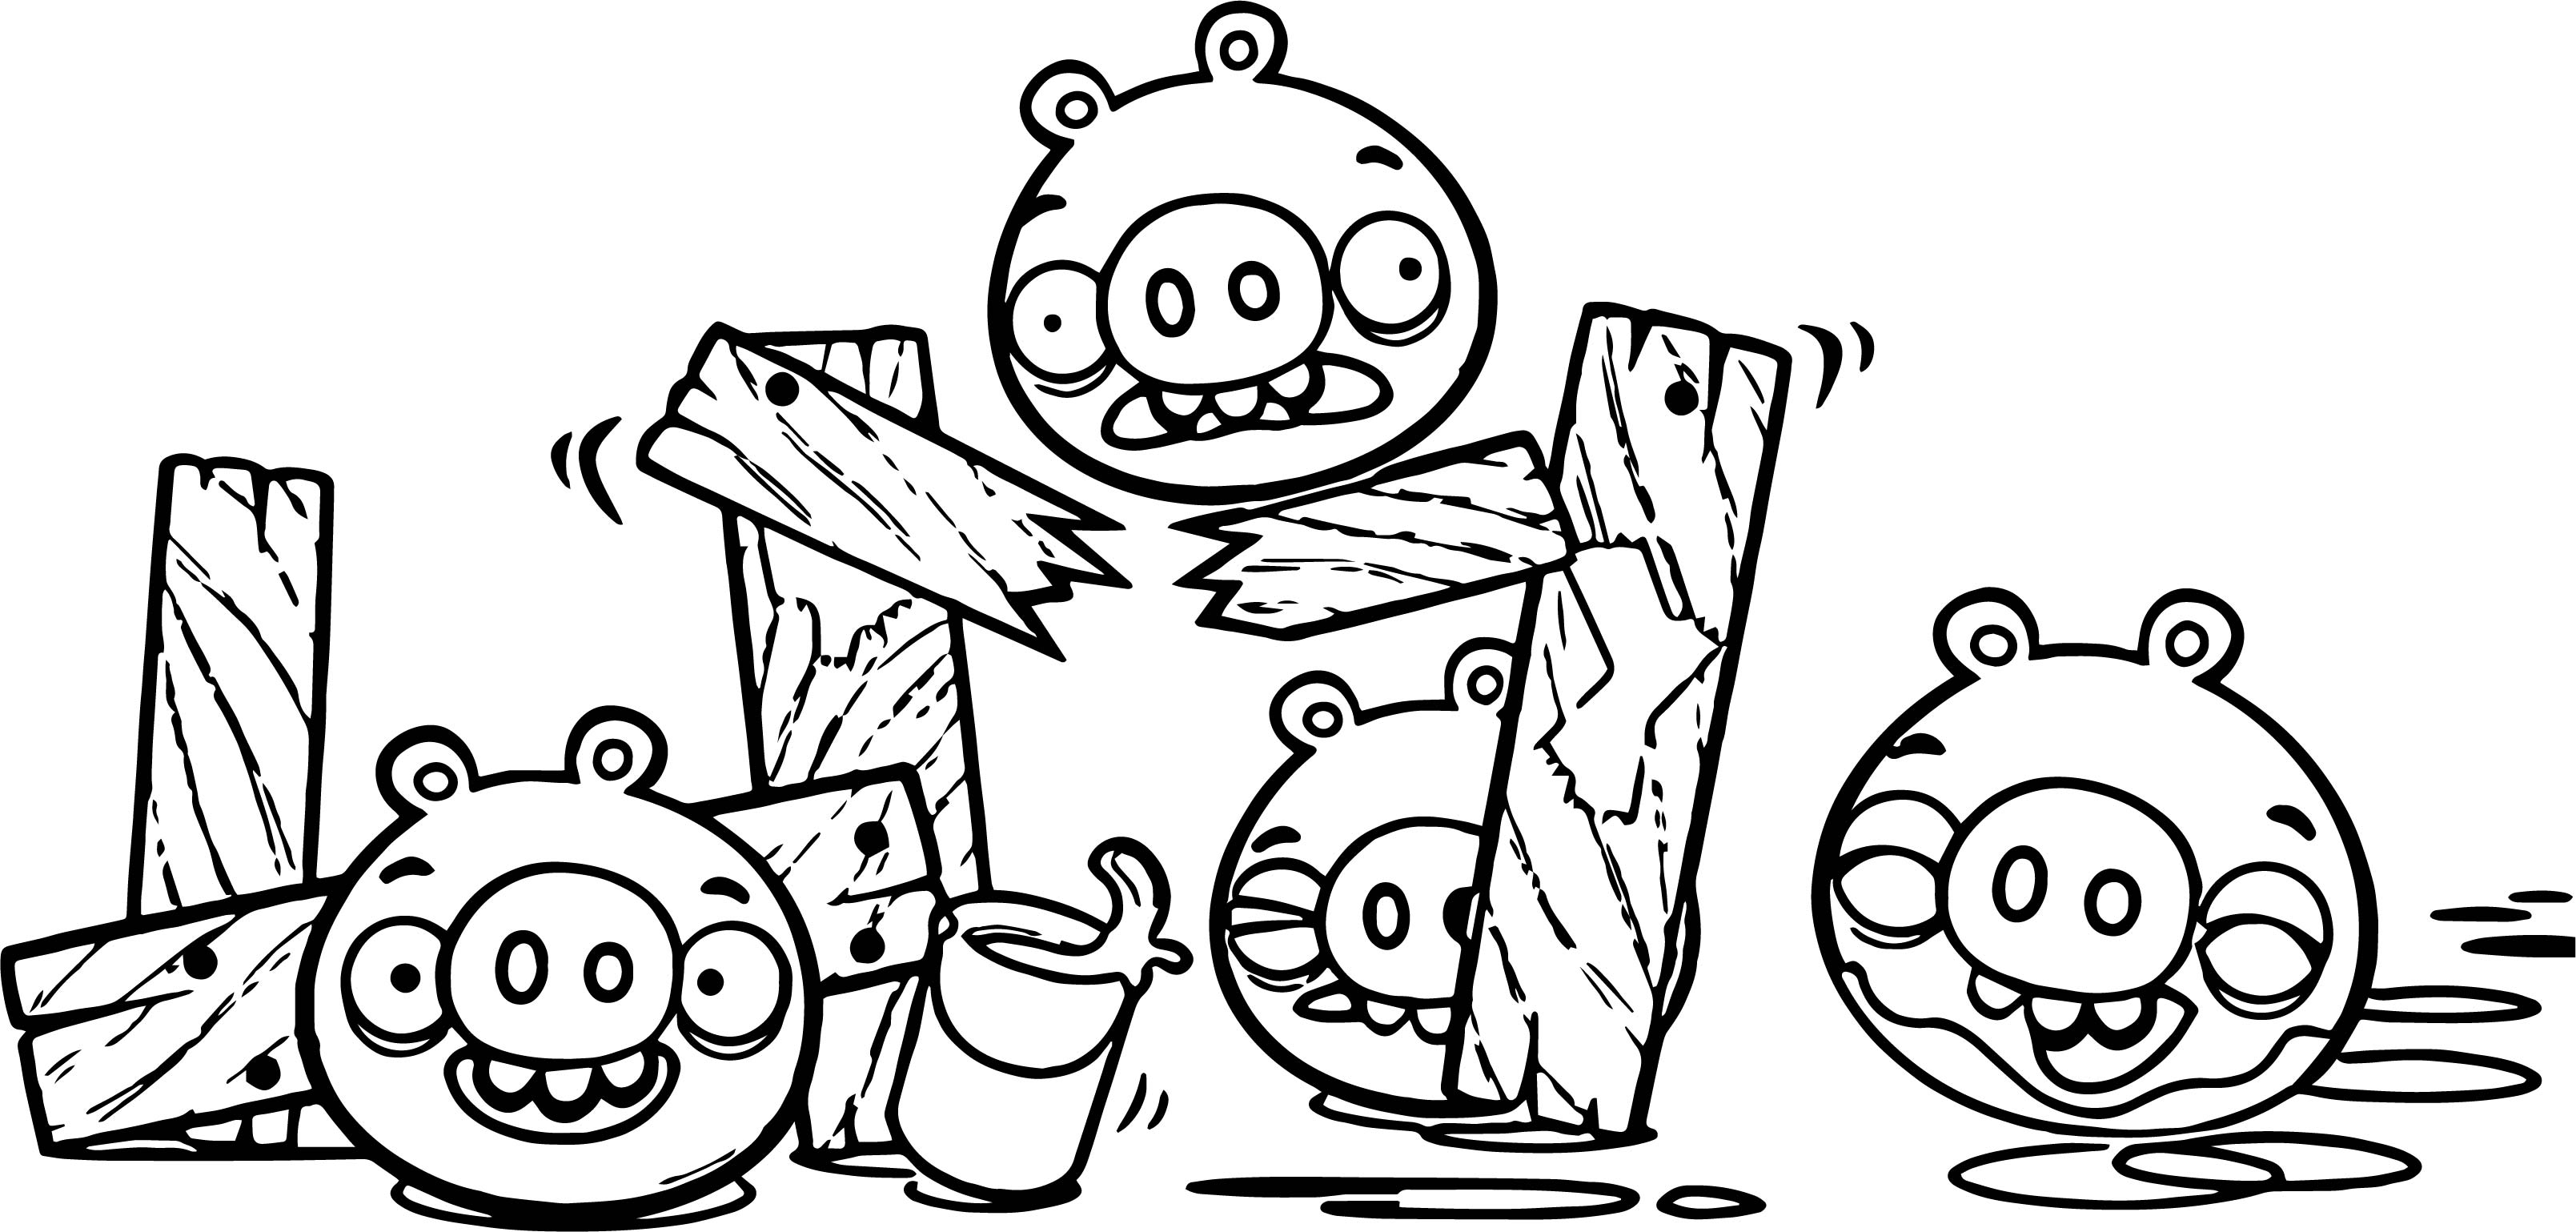 Bad Piggies Coloring Page | Wecoloringpage.com